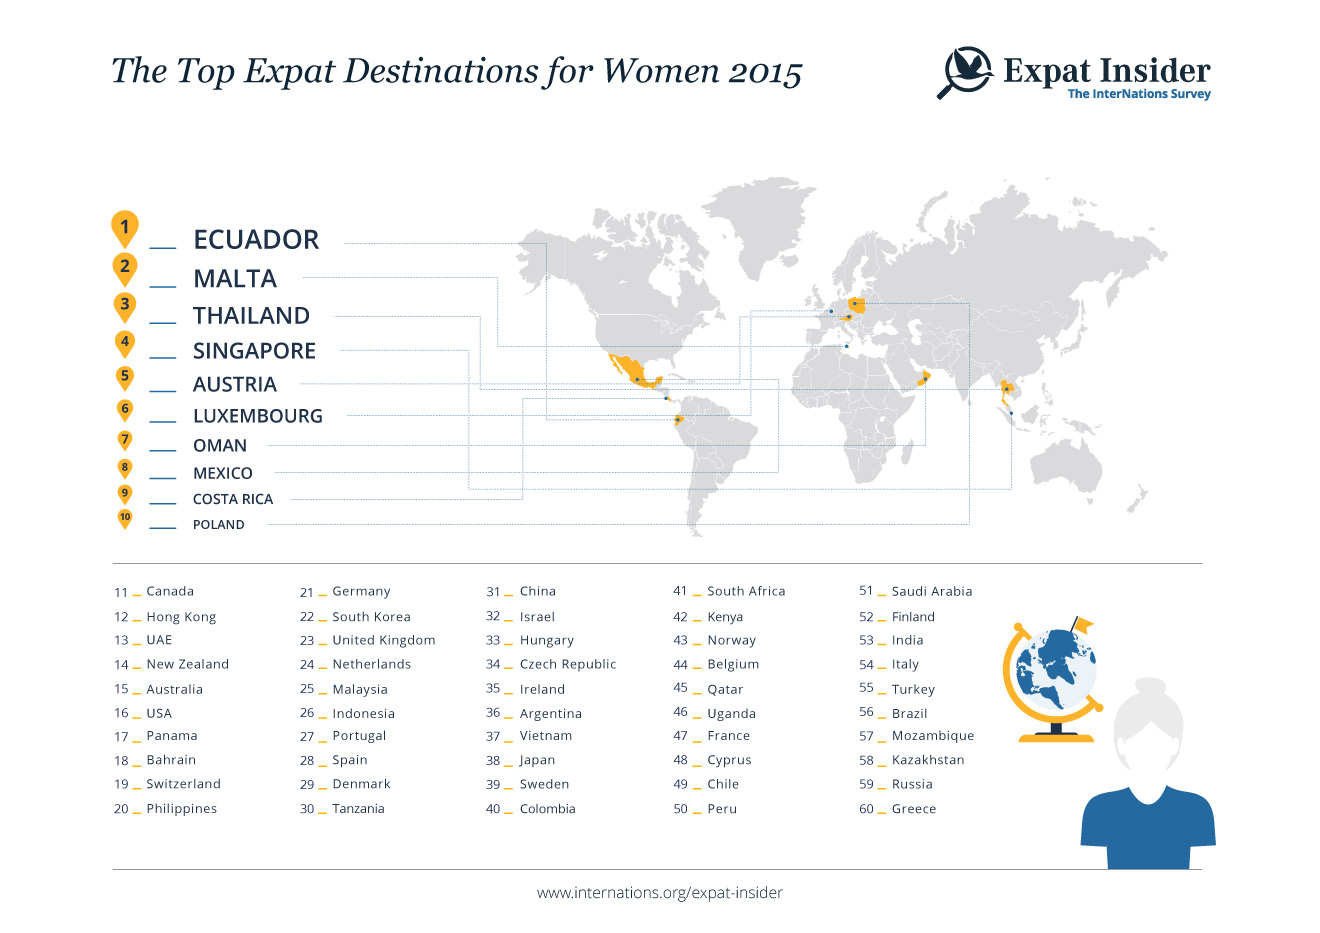 Top Expat Destinations for Women 2015 - infographic